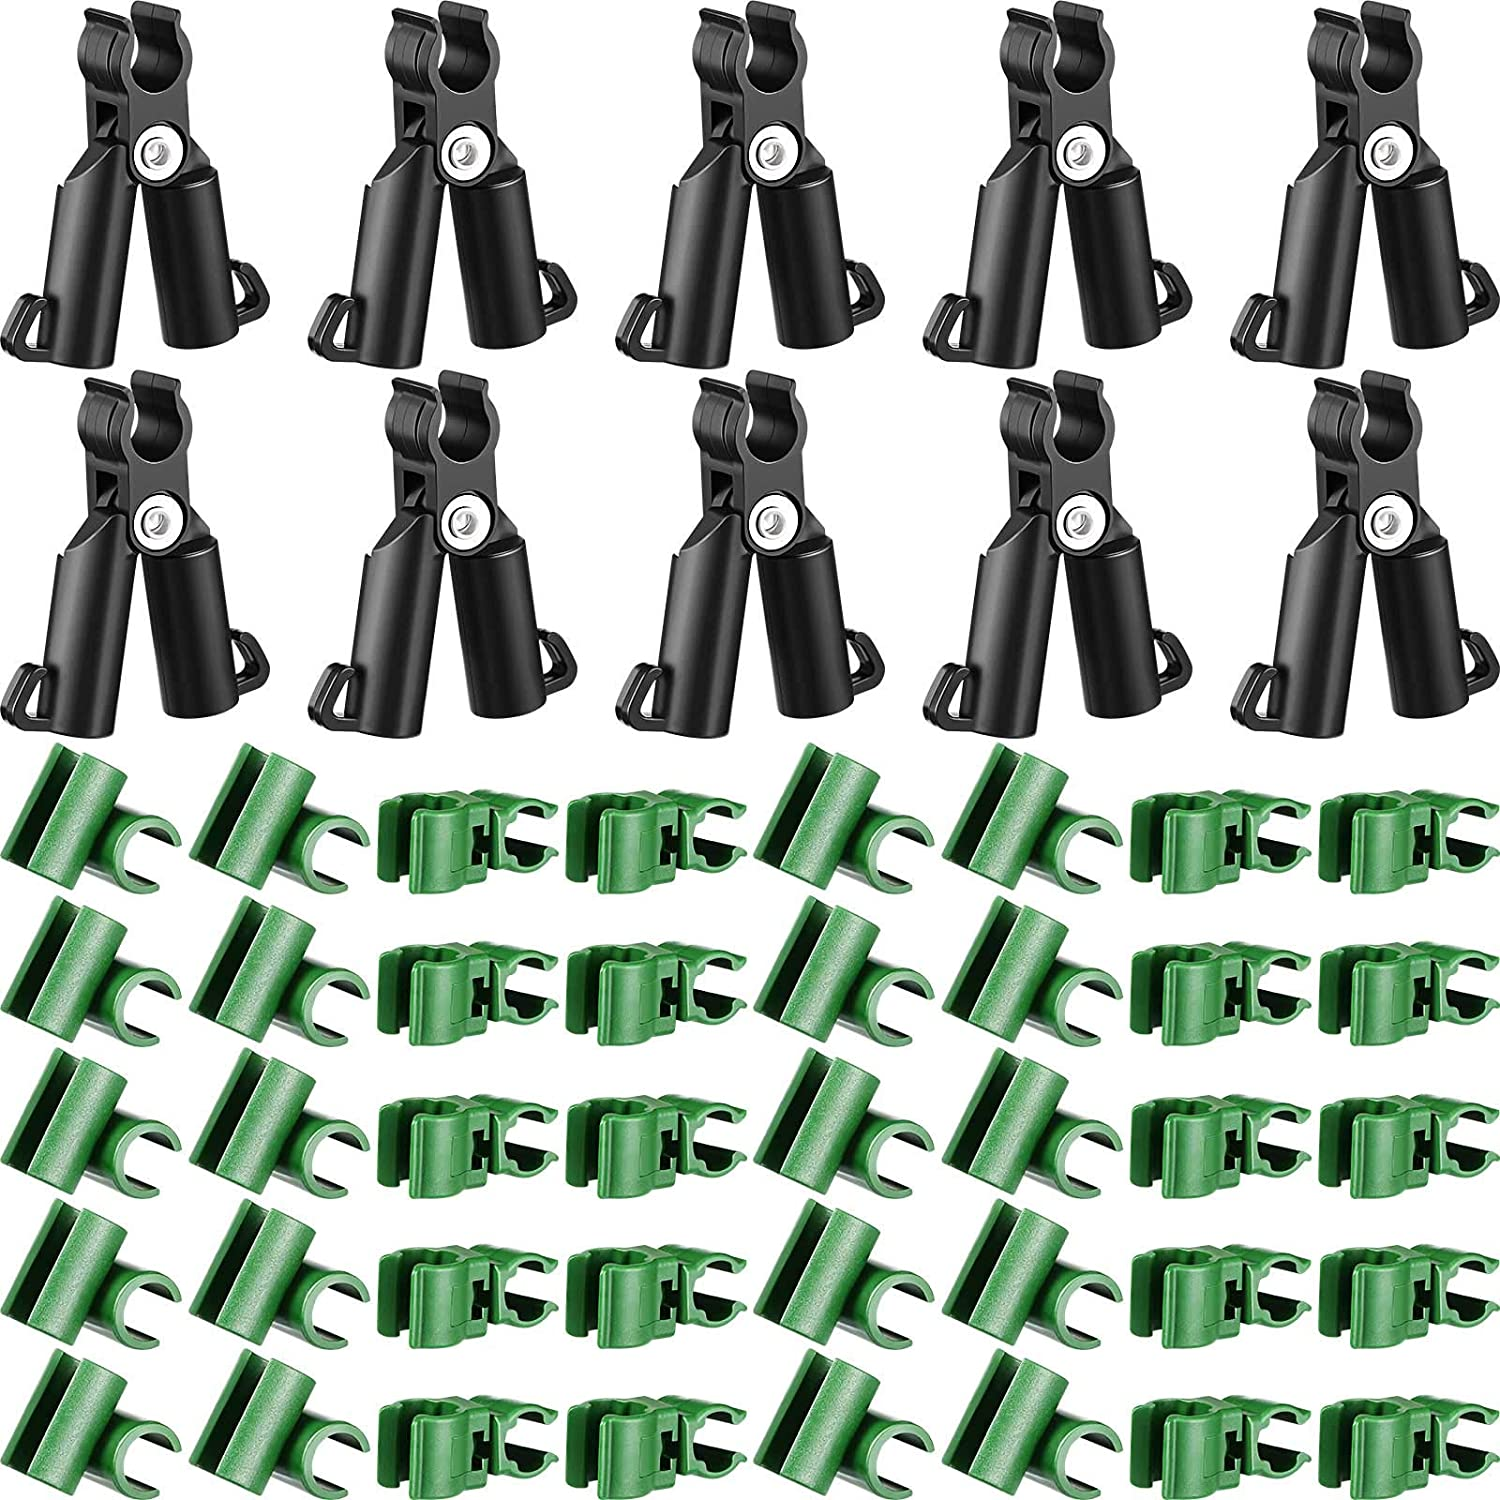 50 Adjustable Plant Trellis Connector Clip Plastic Plant Connector Stakes Garden Plastic Connector A-Type Connecting Joint Buckle Clip for Gardening Stakes Metal Steel Plant Supports Climbing (11 mm)